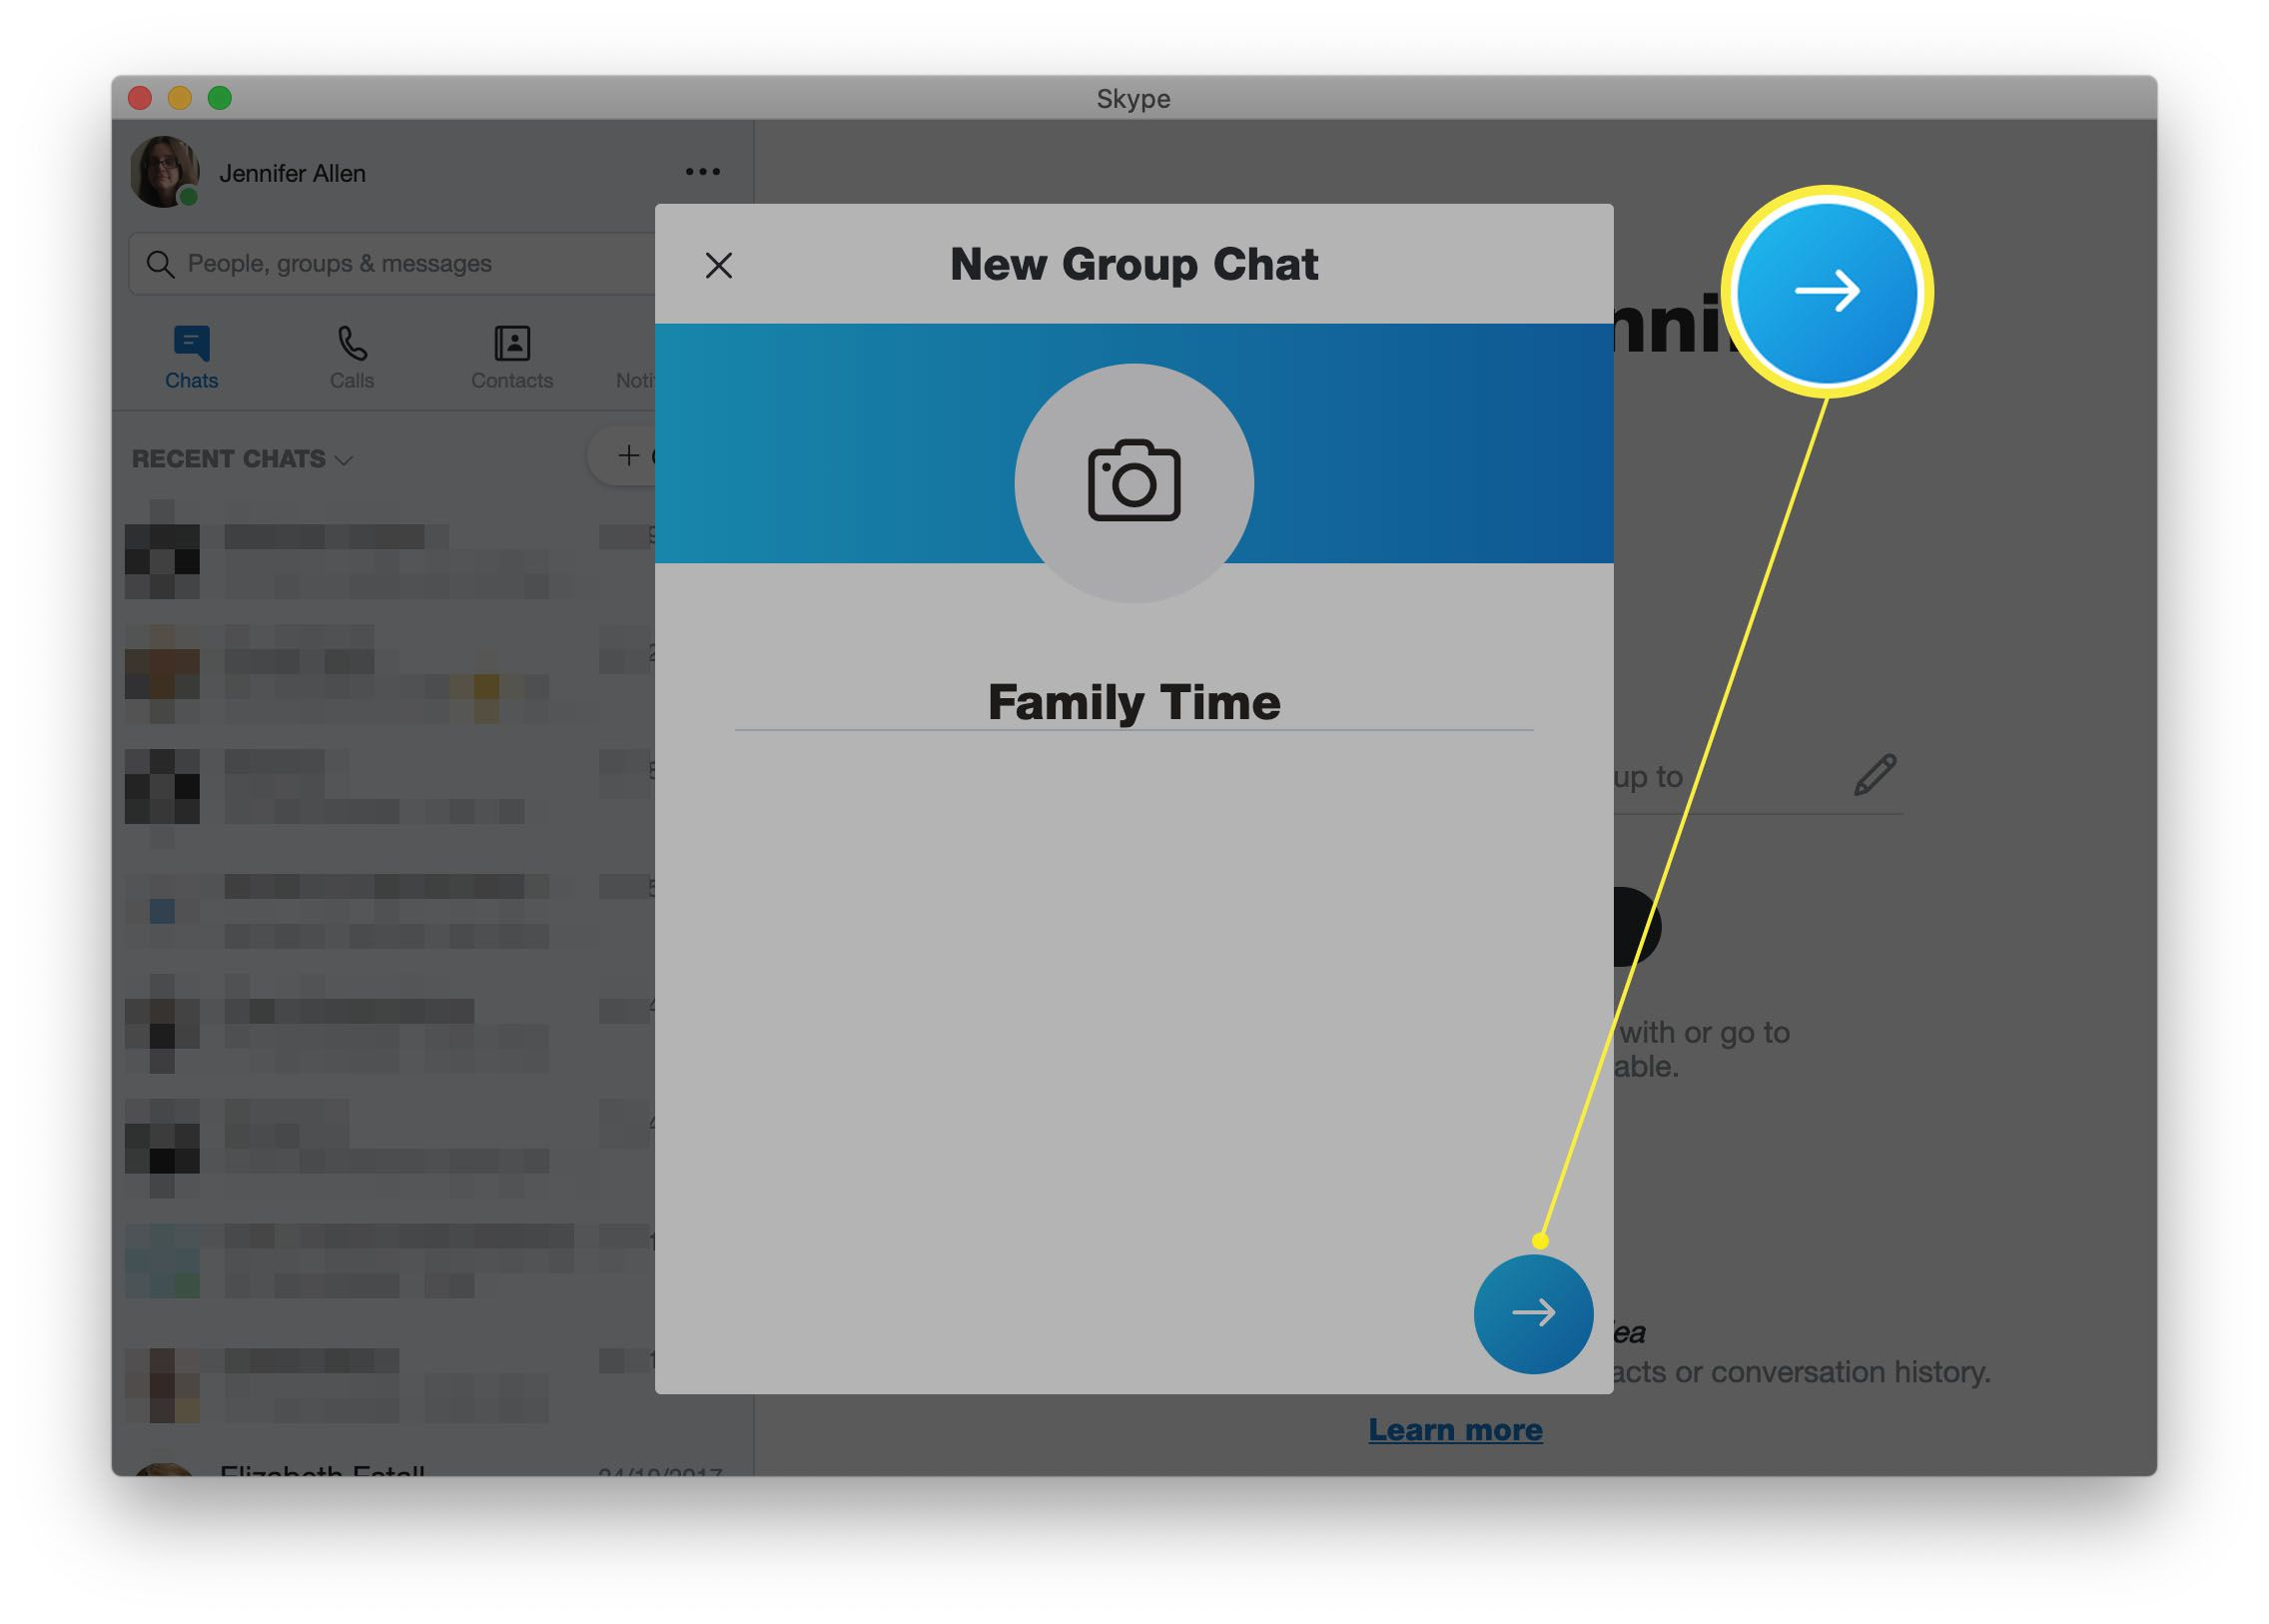 Skype with new group chat options